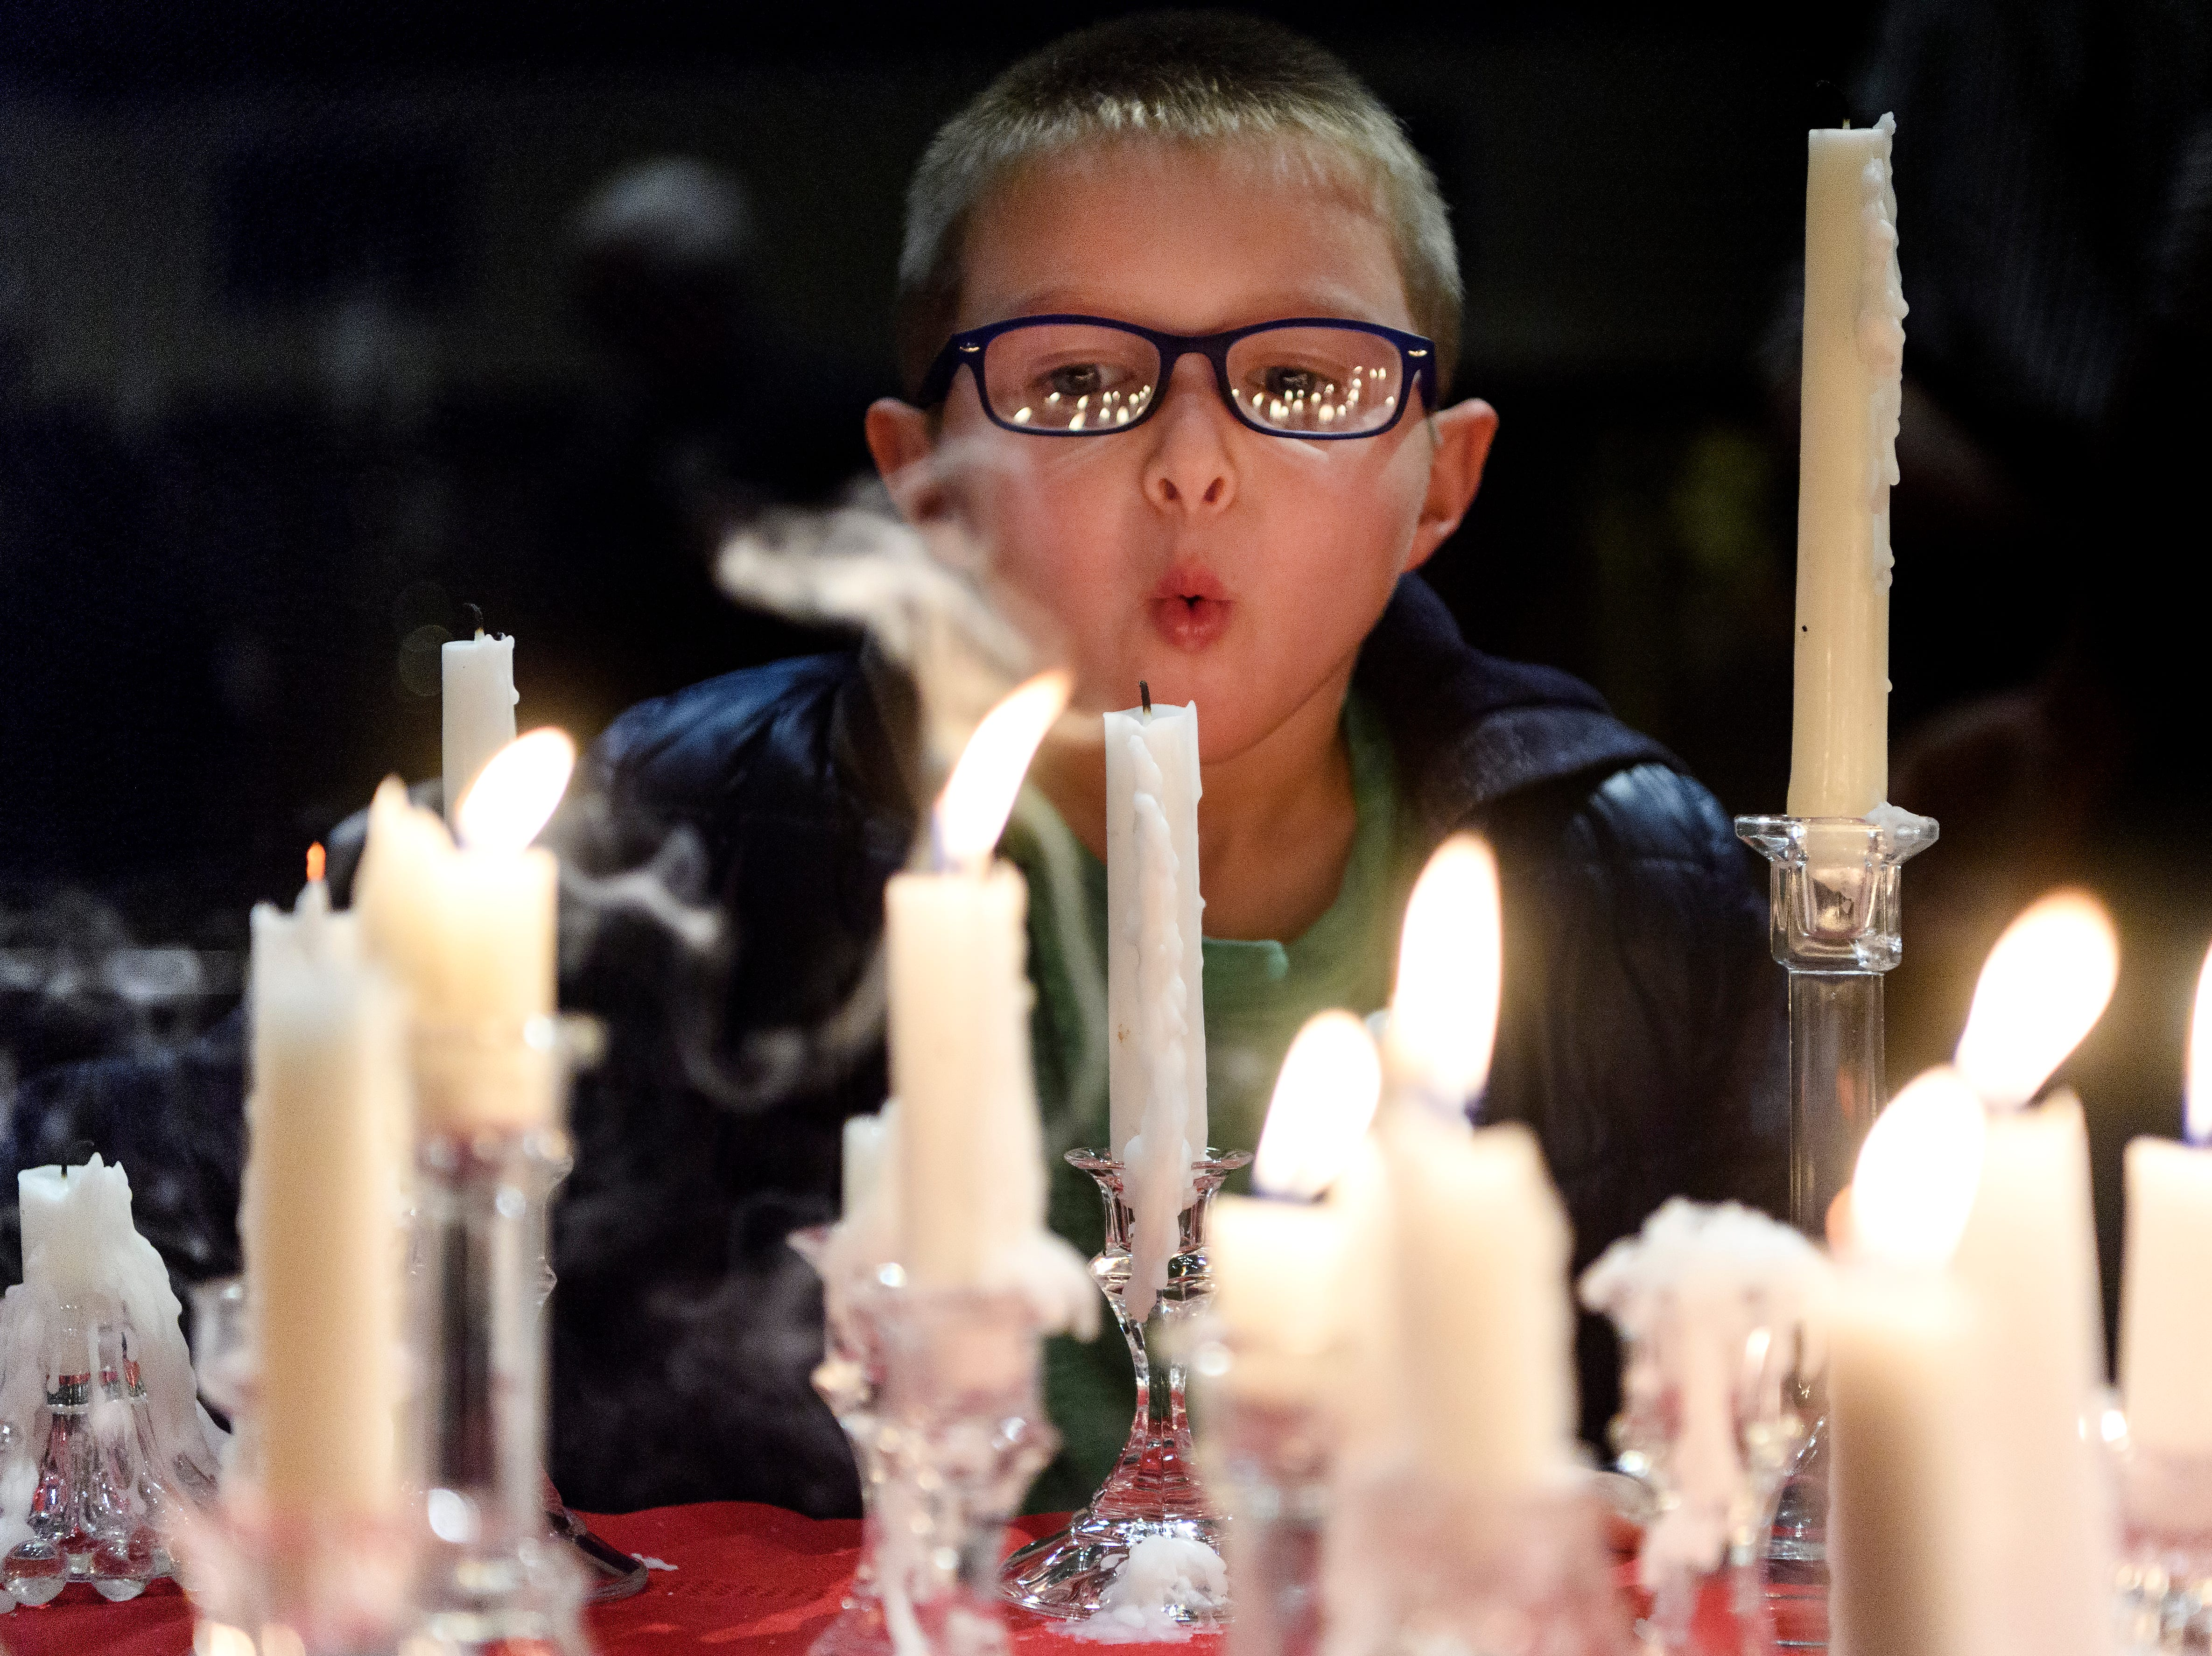 Kaleb Herron, 5, helps blow out candles at the end of the 18th annual Homeless Memorial service organized by Aurora, a local non-profit serving the homeless population, at Trinity United Methodist Church in Evansville, Ind., Tuesday, Dec. 11, 2018. Herron's uncle, Ronald Murray died in October and was memorialized by Herron's mother, Leann Herron, during the ceremony.